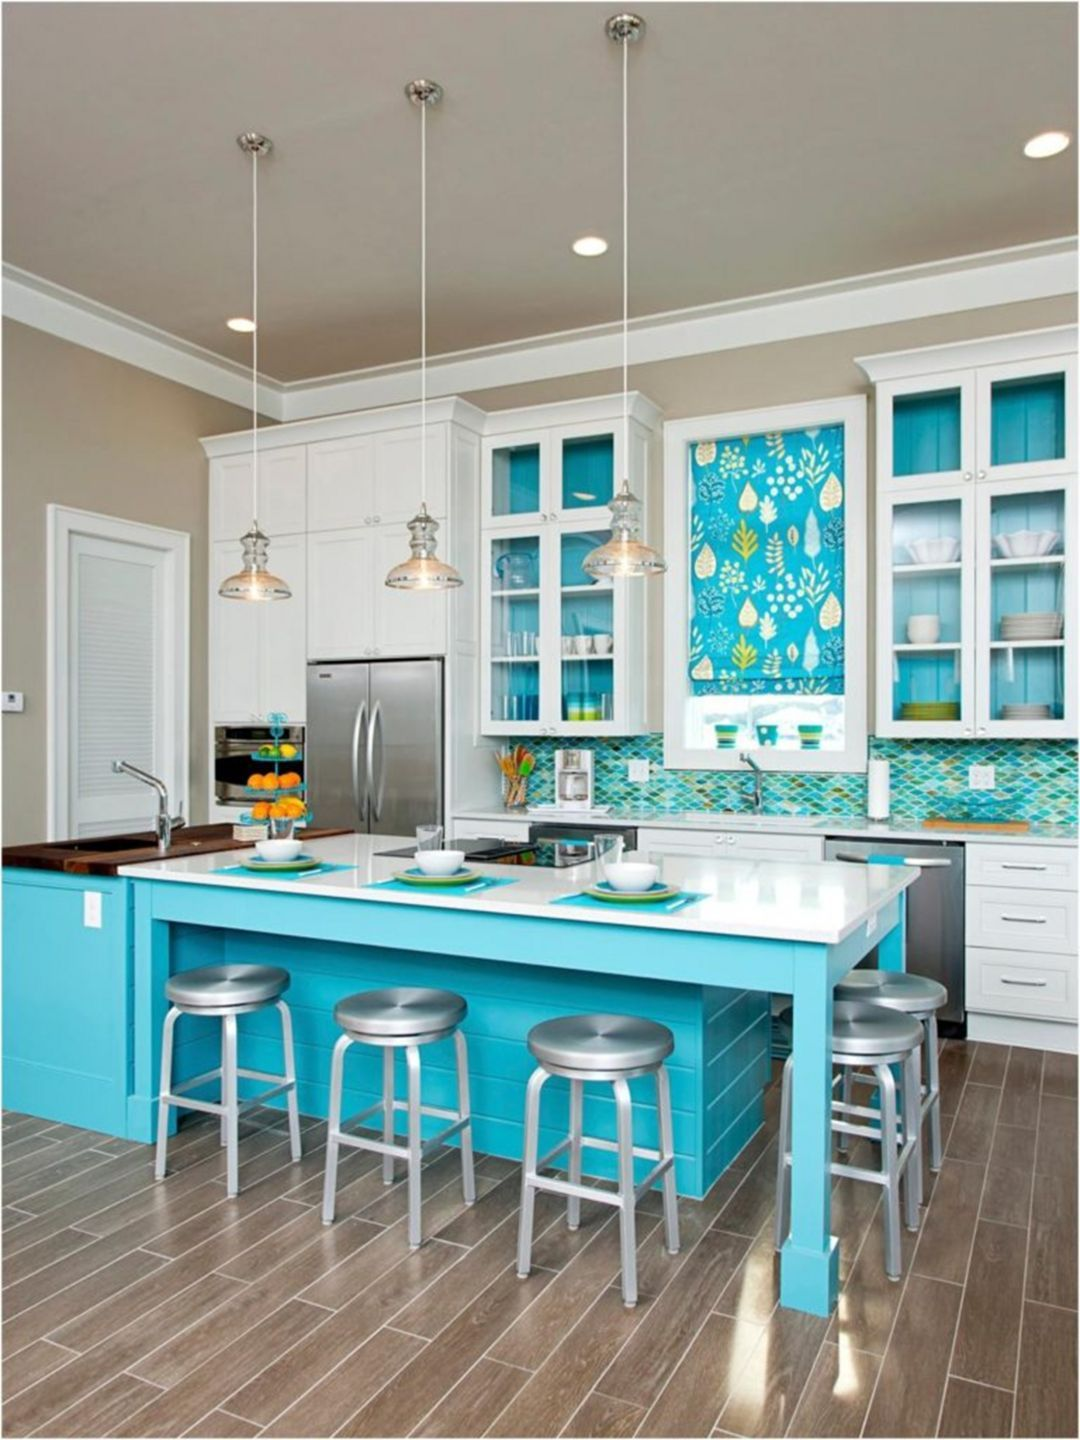 15 Impressive Gray and Turquoise Color Scheme Ideas for ...